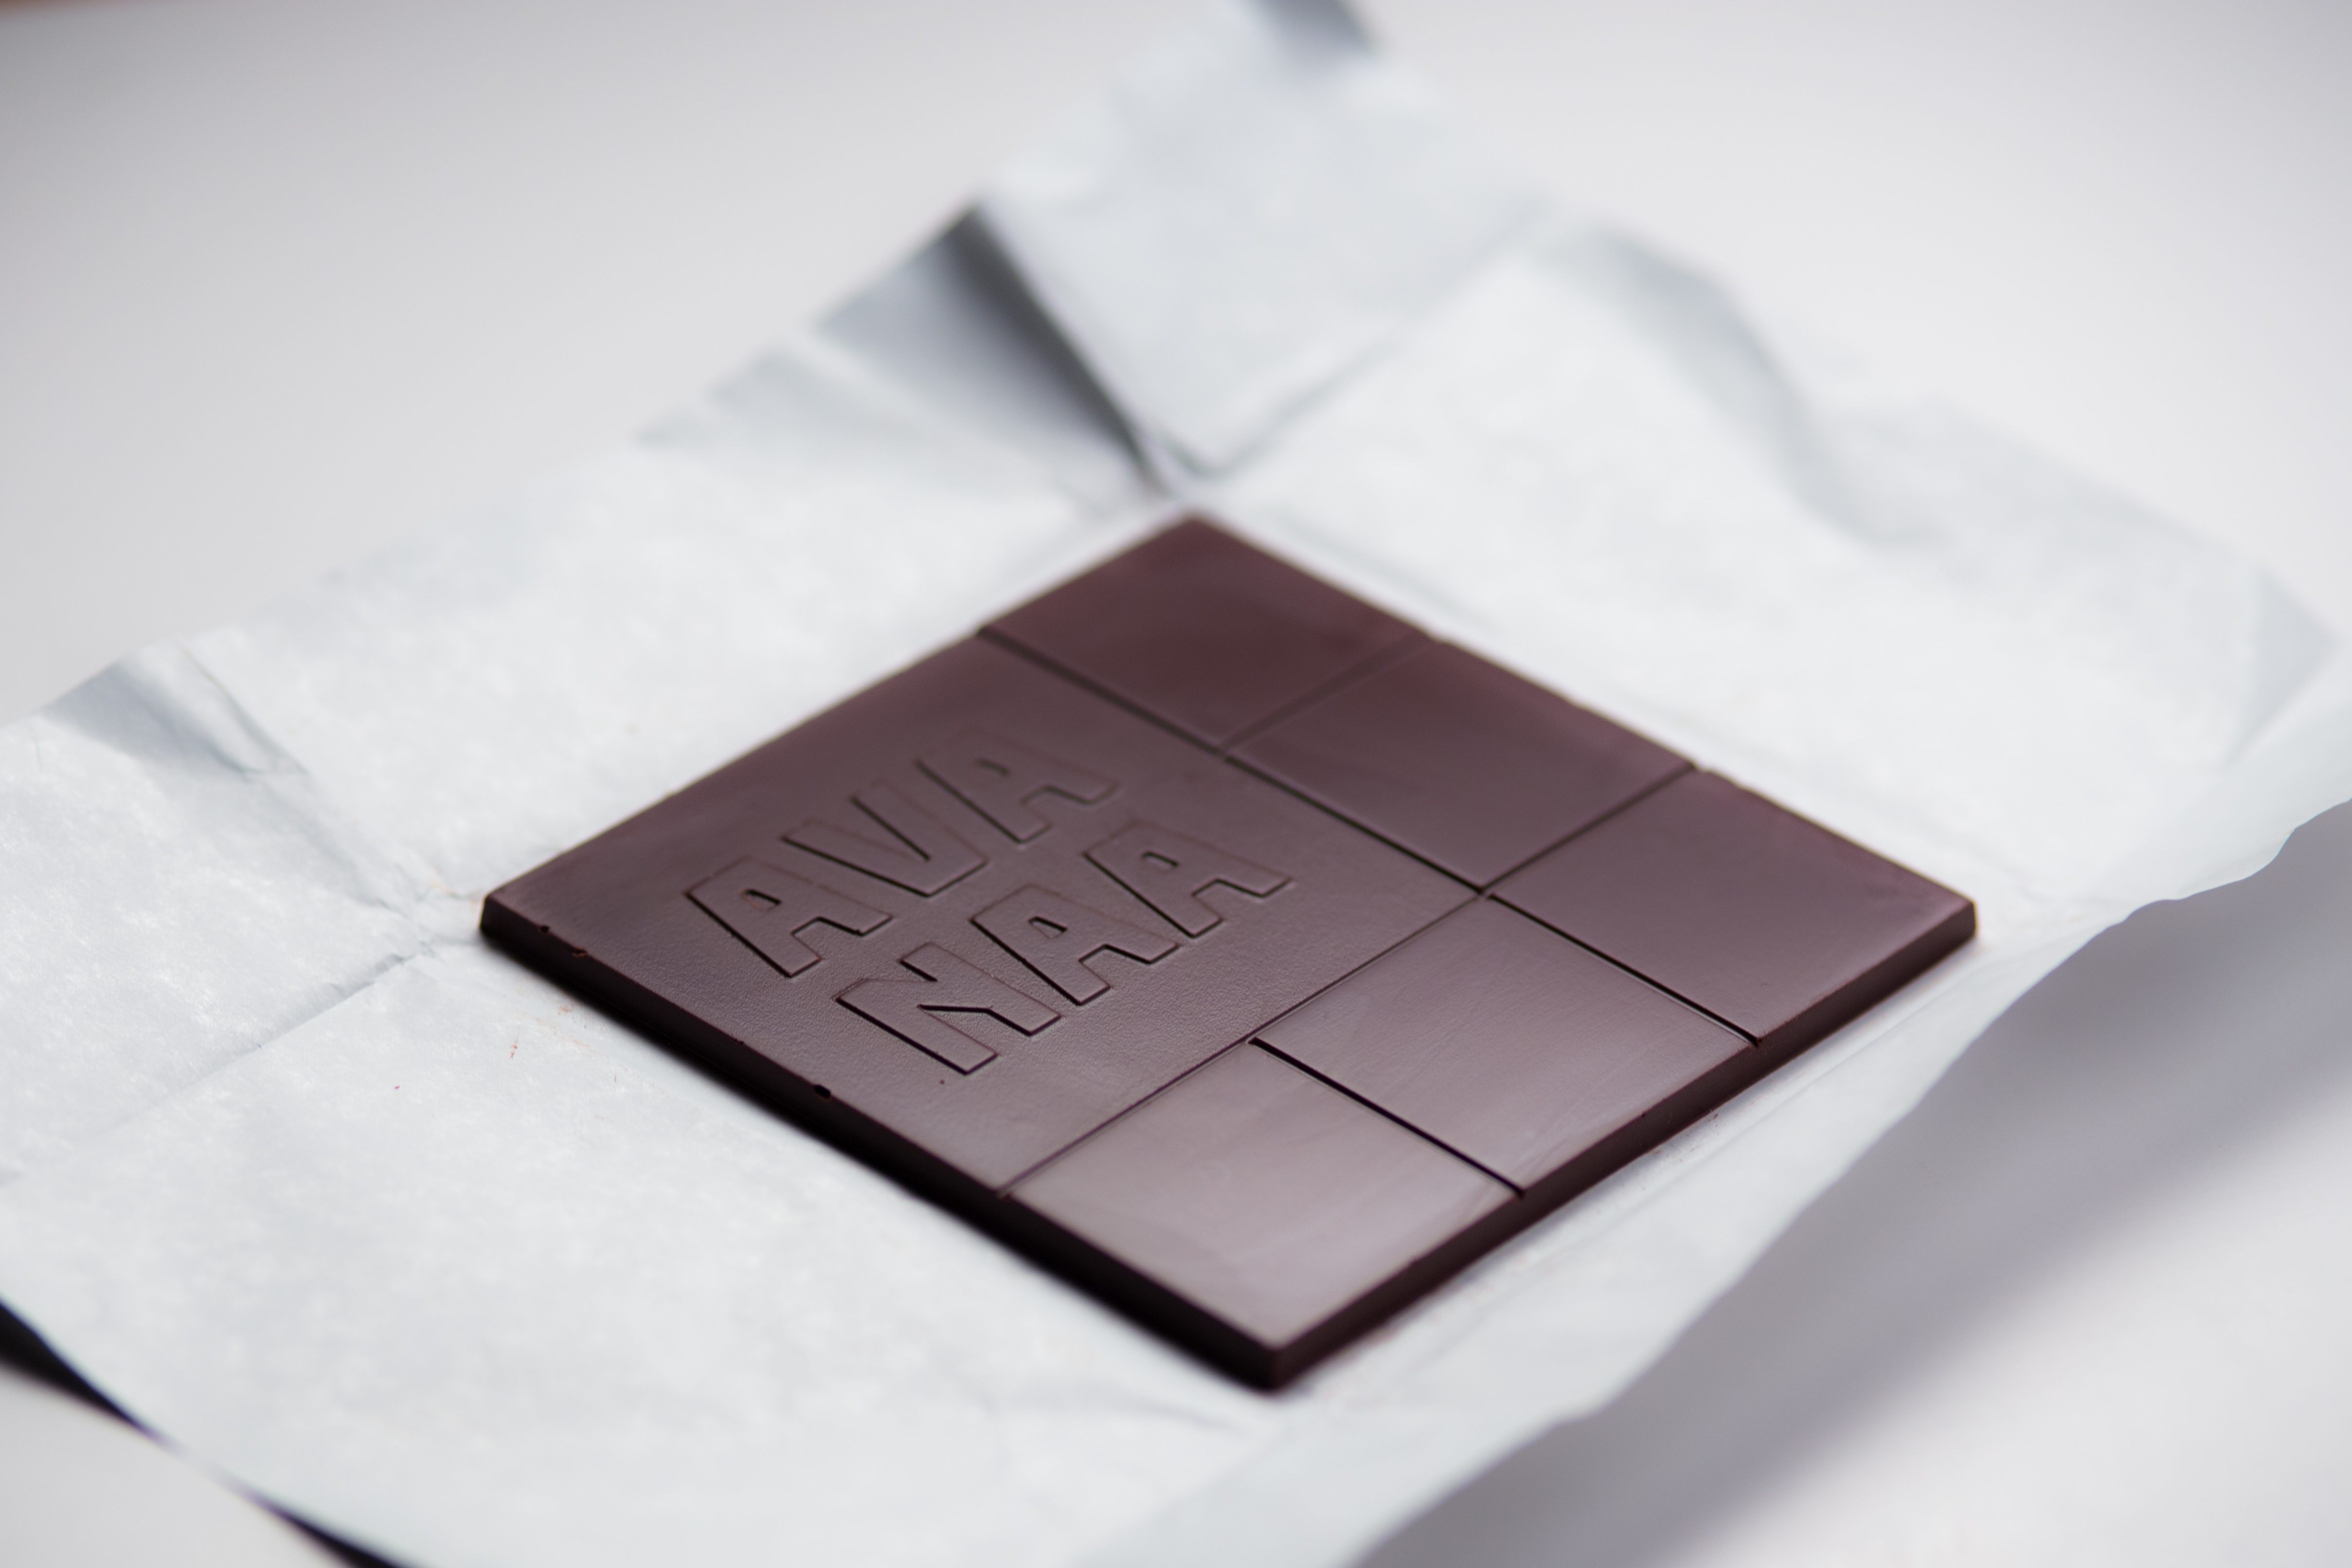 A chocolate square on white paper.